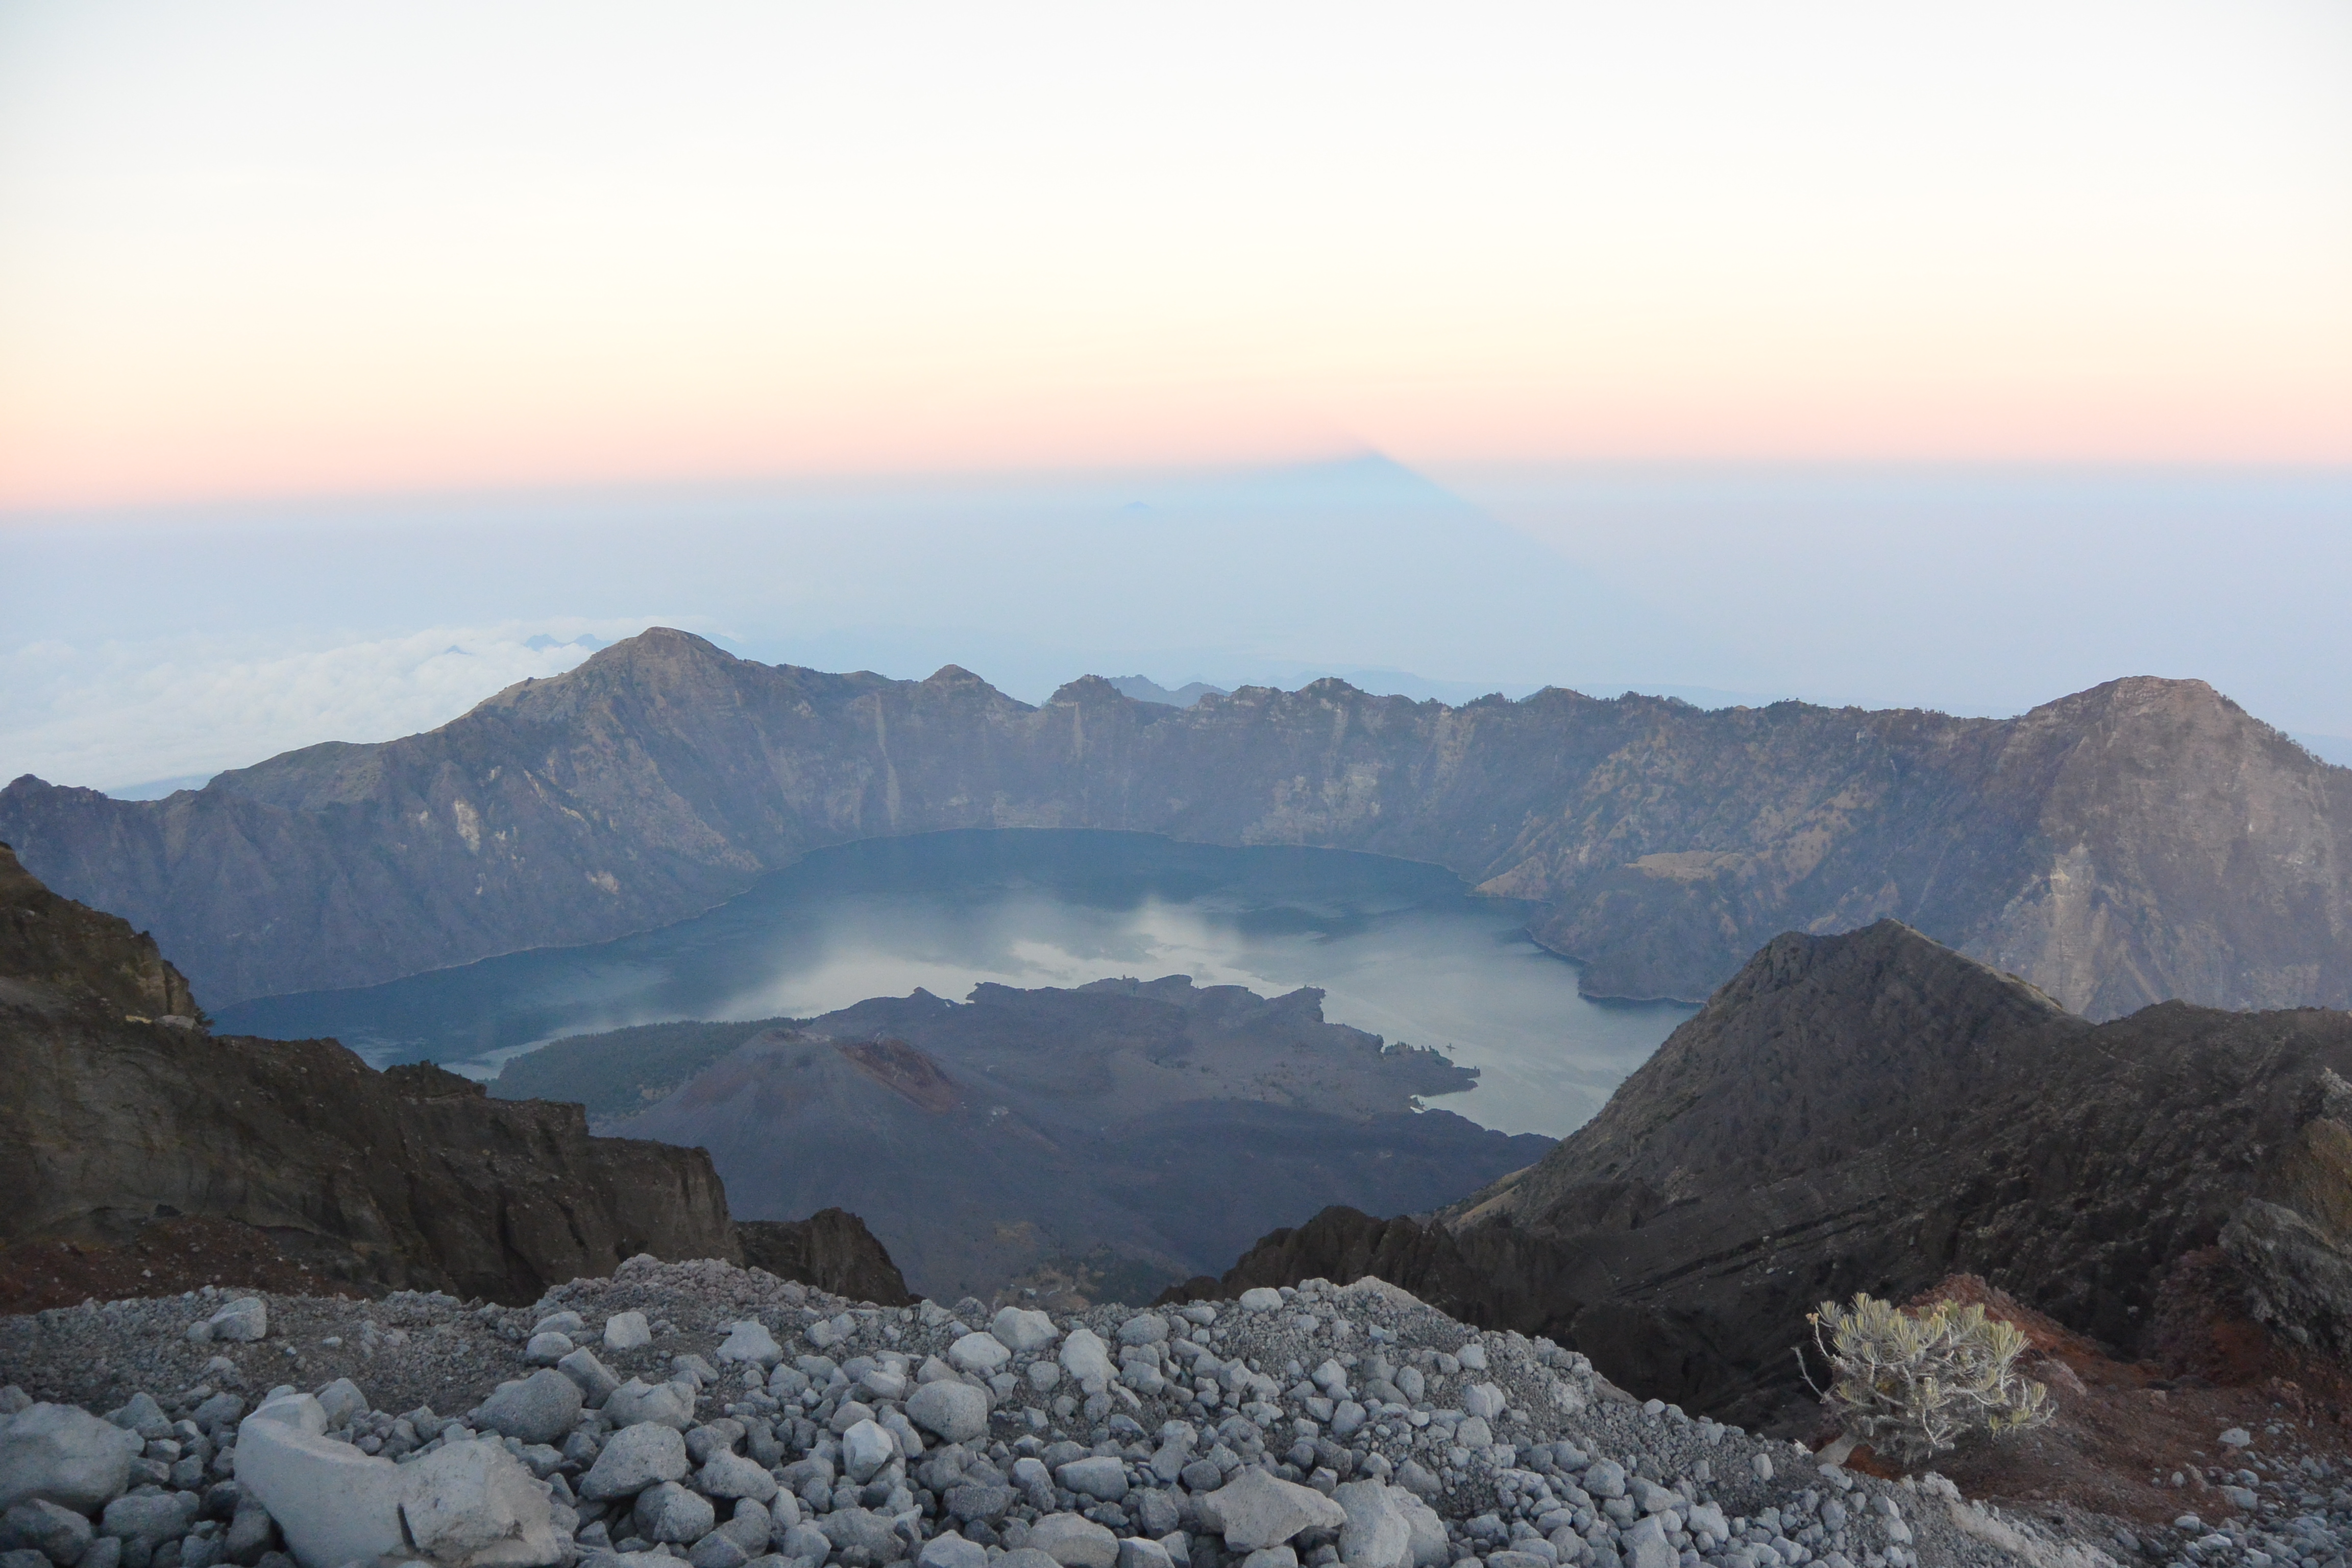 Climbing mount rinjani package lombok island indonesia about us - Jamal Told Us We Could Go If We Wanted But He Wasn T Going Up With Us One Of The Porters Would Take Us Only About 5 Of Us Decided To Make The